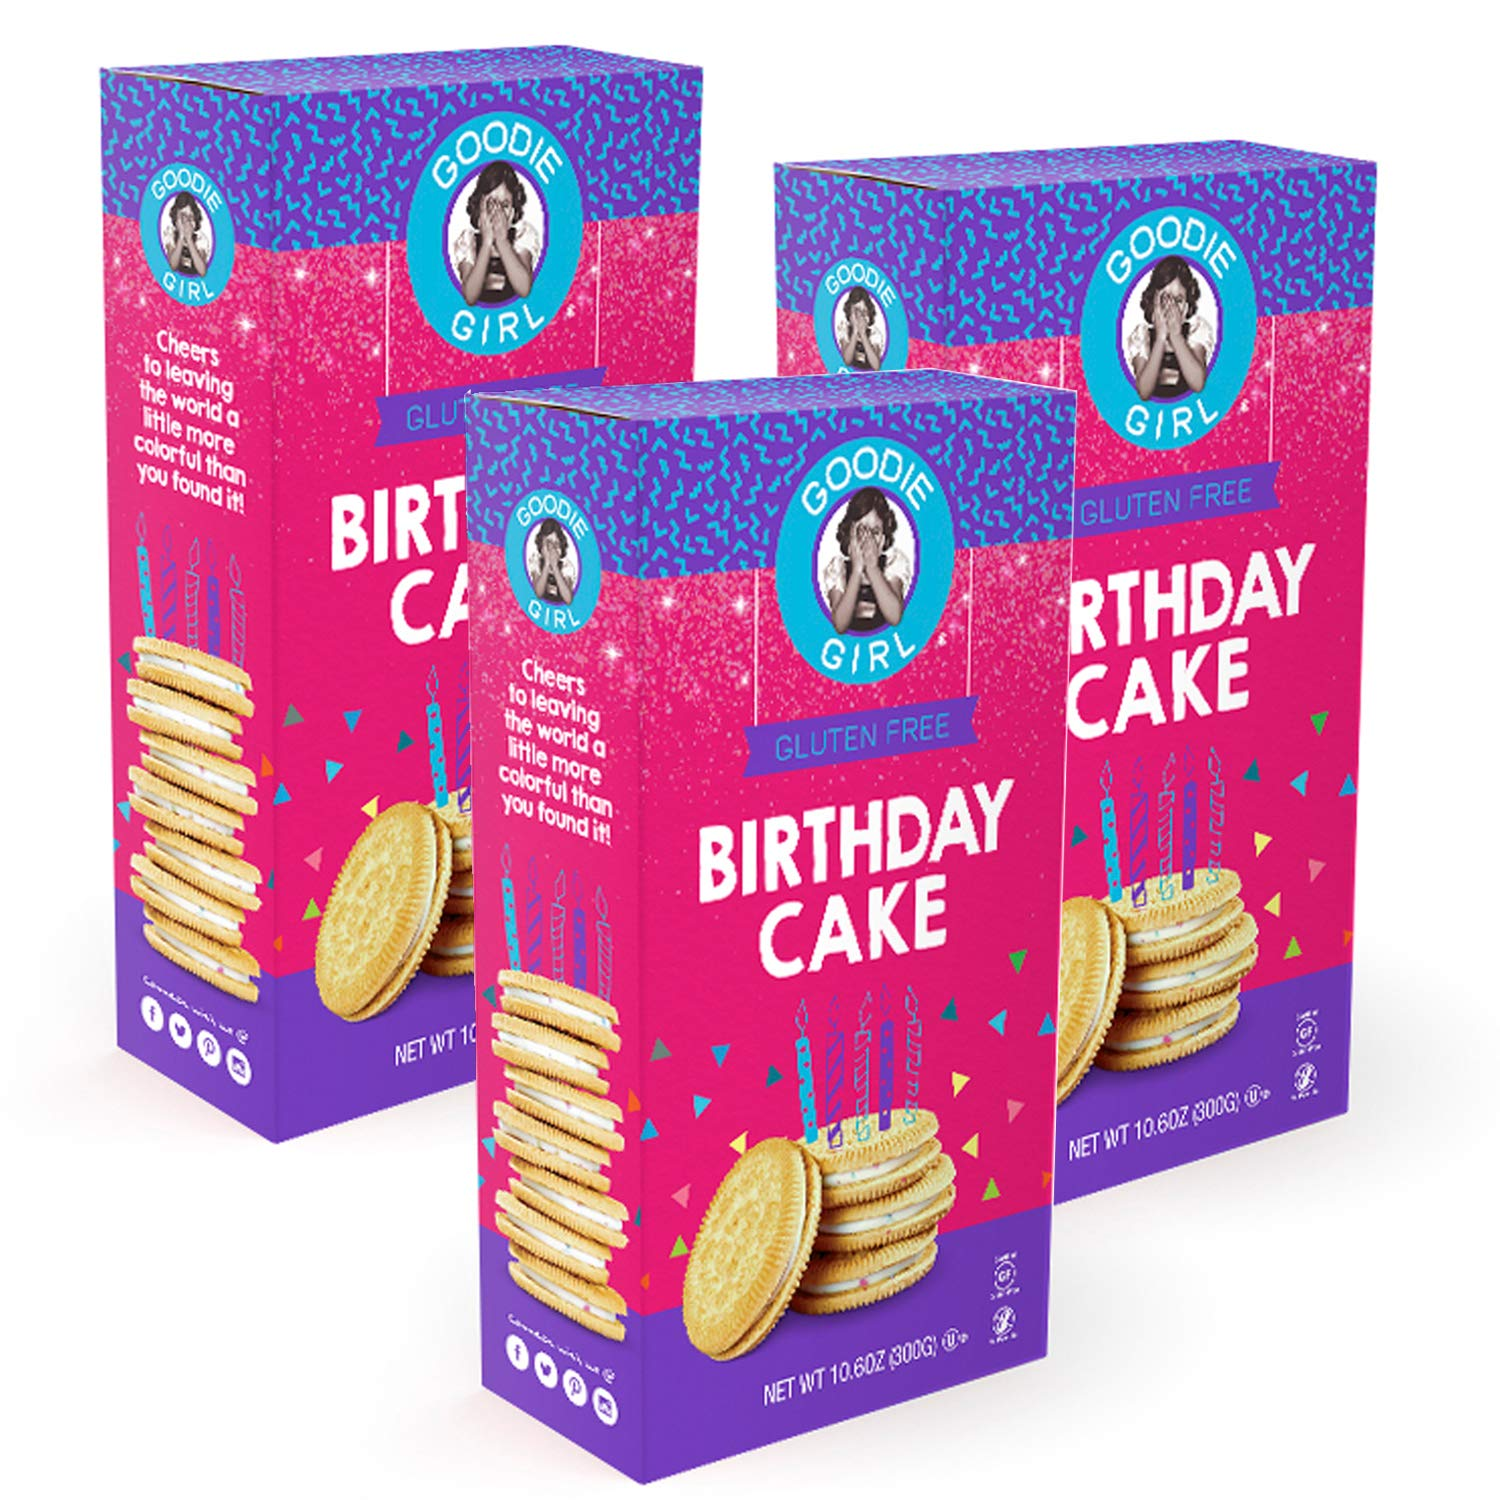 Phenomenal Goodie Girl Gluten Free Cookies Birthday Cake Cookies Certified Personalised Birthday Cards Arneslily Jamesorg